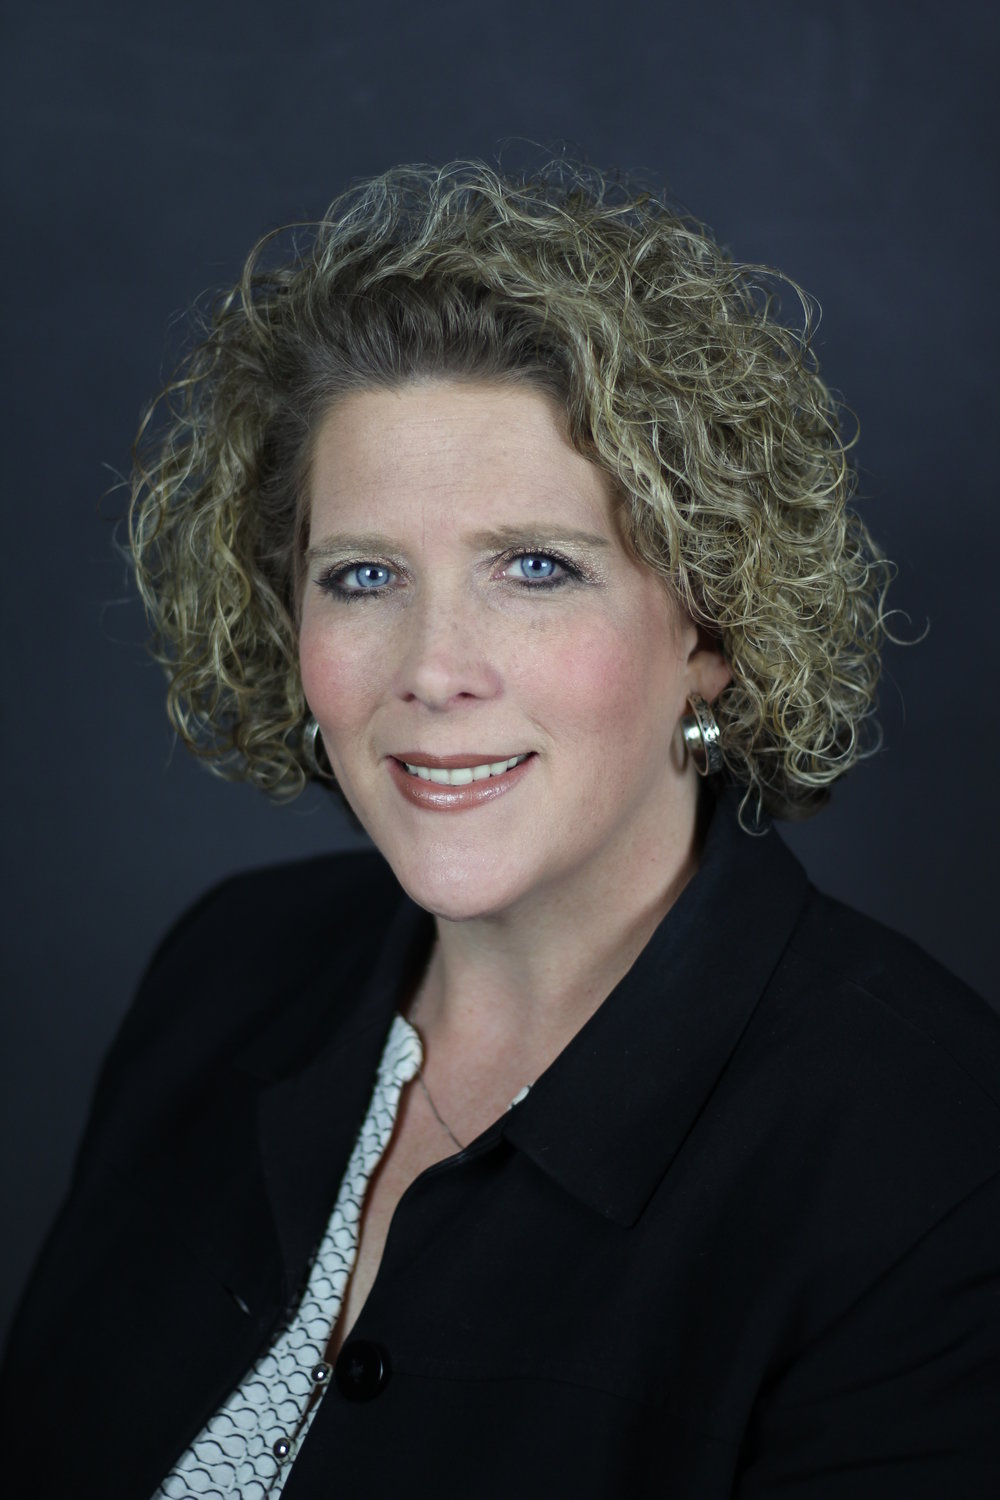 City Secretary - Jennifer Studdard